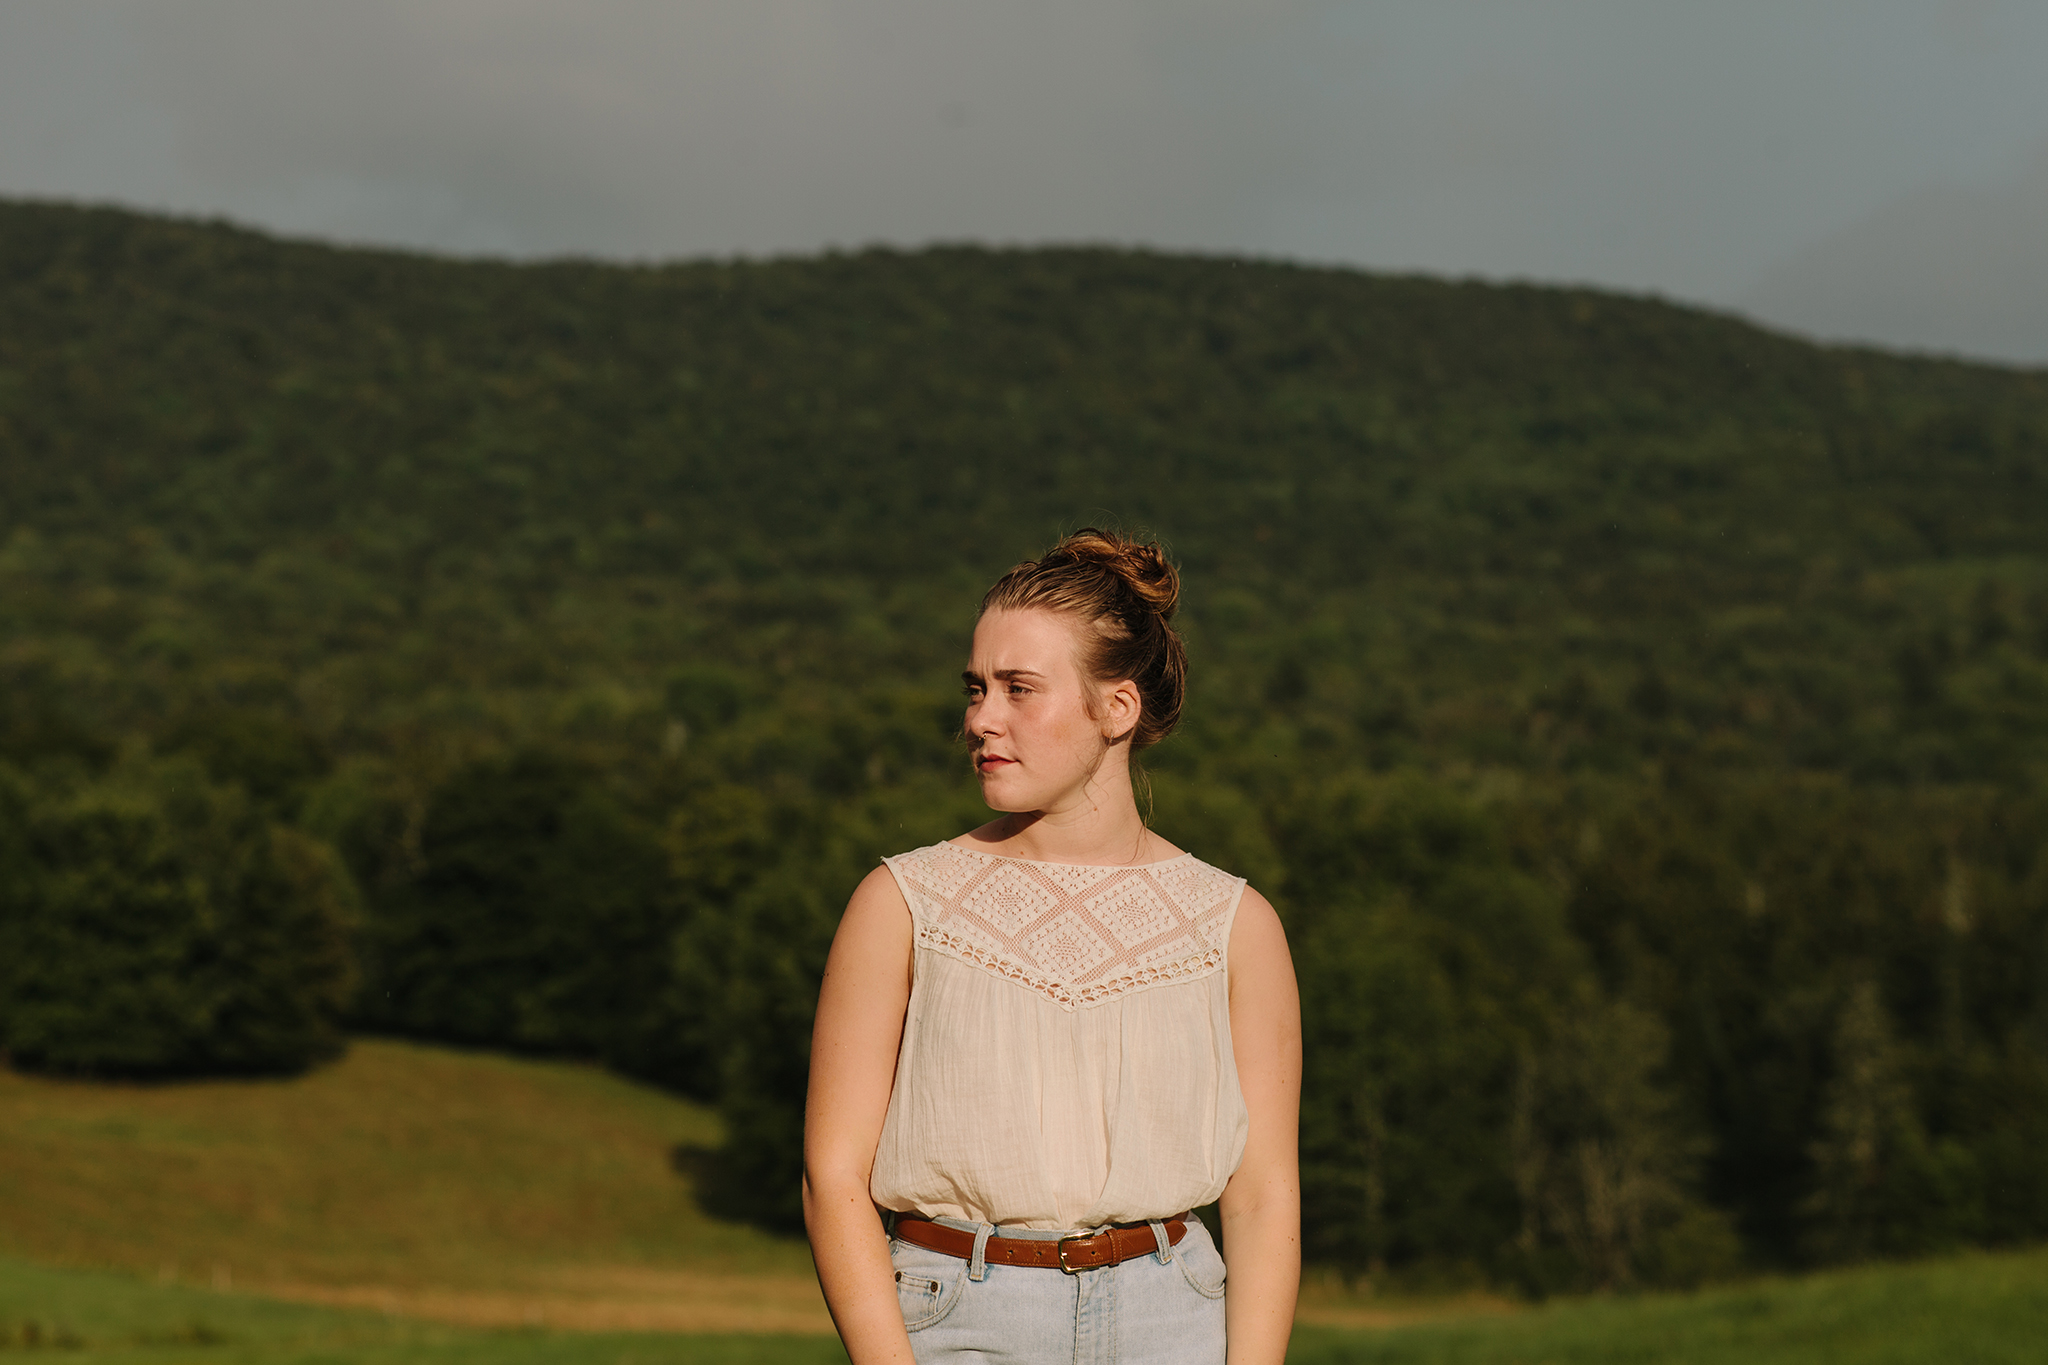 vermont_senior_portraits_photographer06.JPG